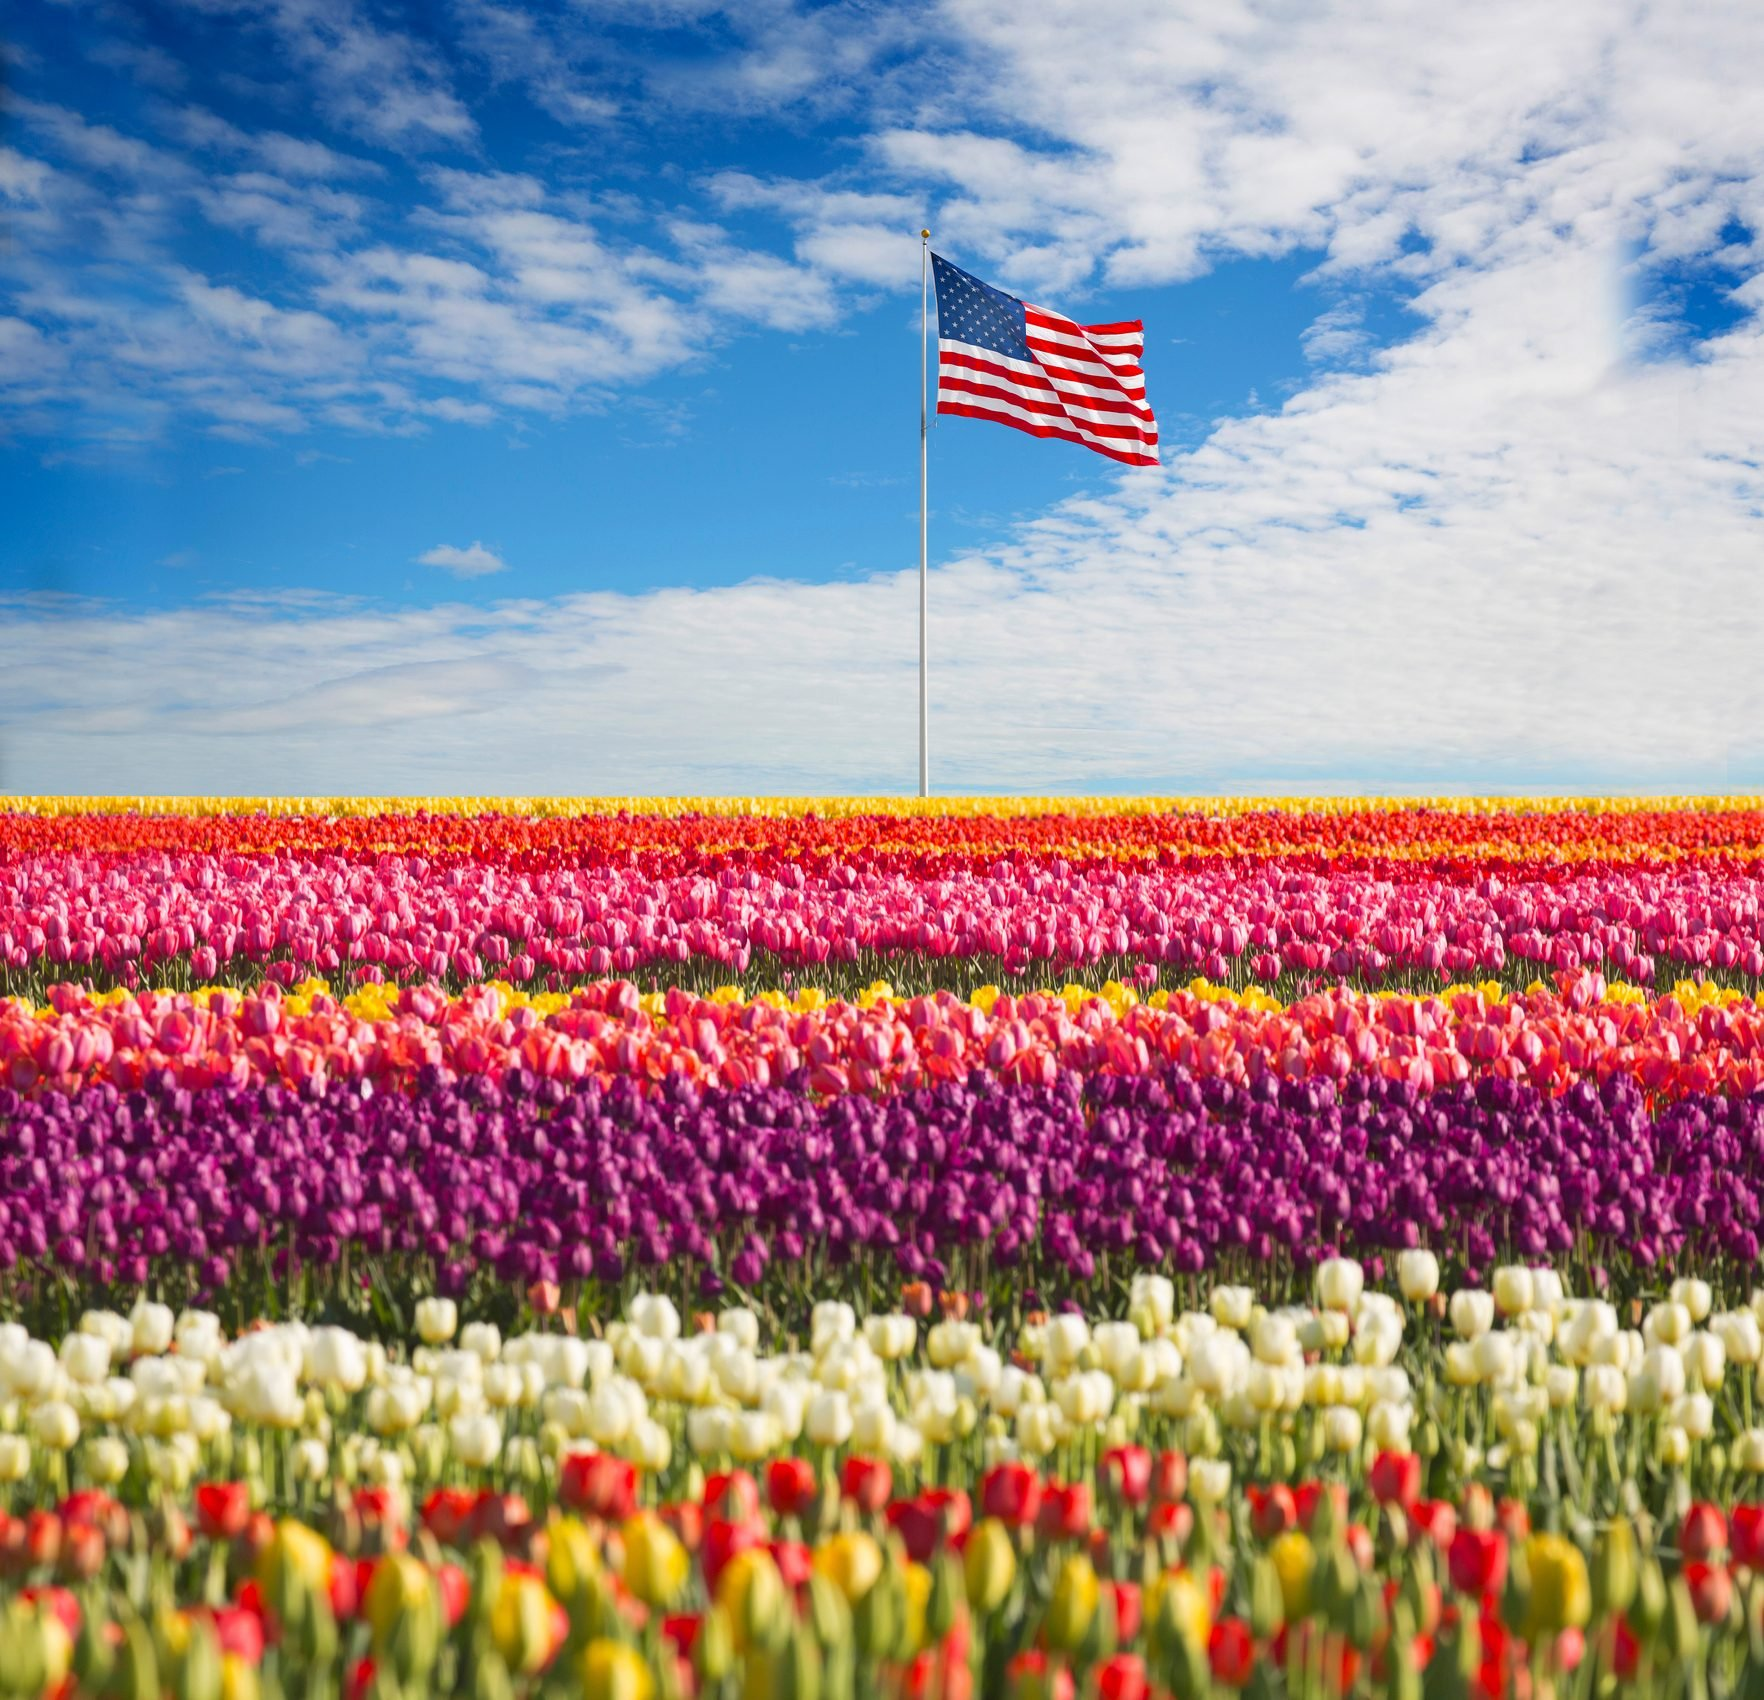 an american flag on a pole with a tulip field in the foreground